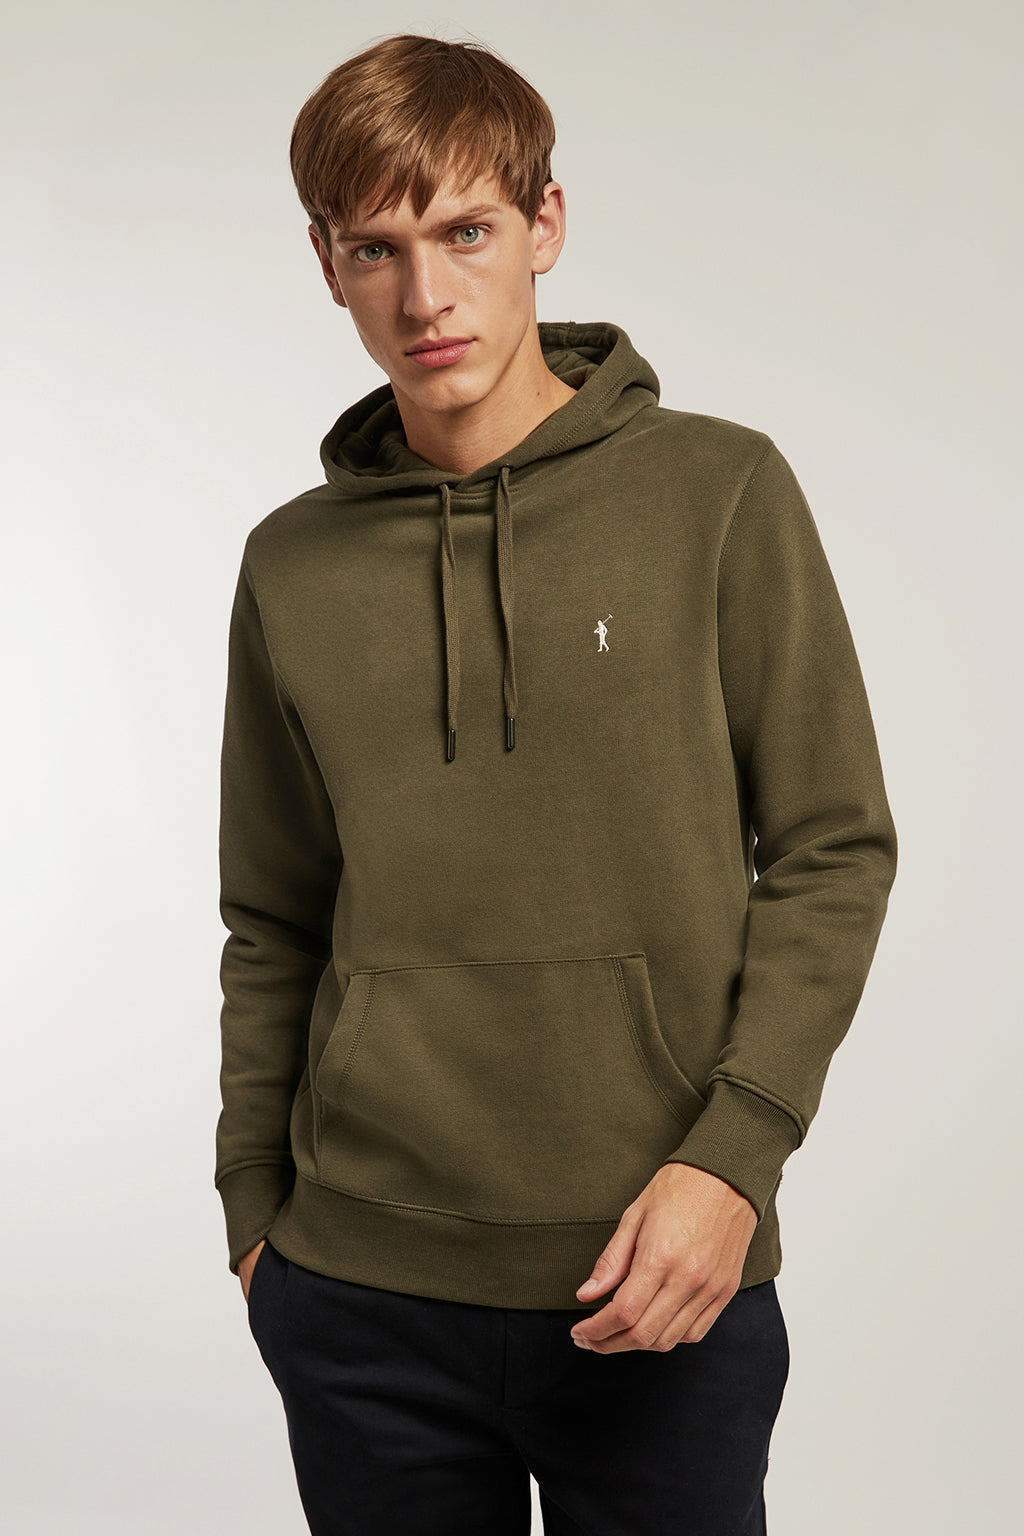 Washed khaki hooded sweatshirt with kangaroo pocket